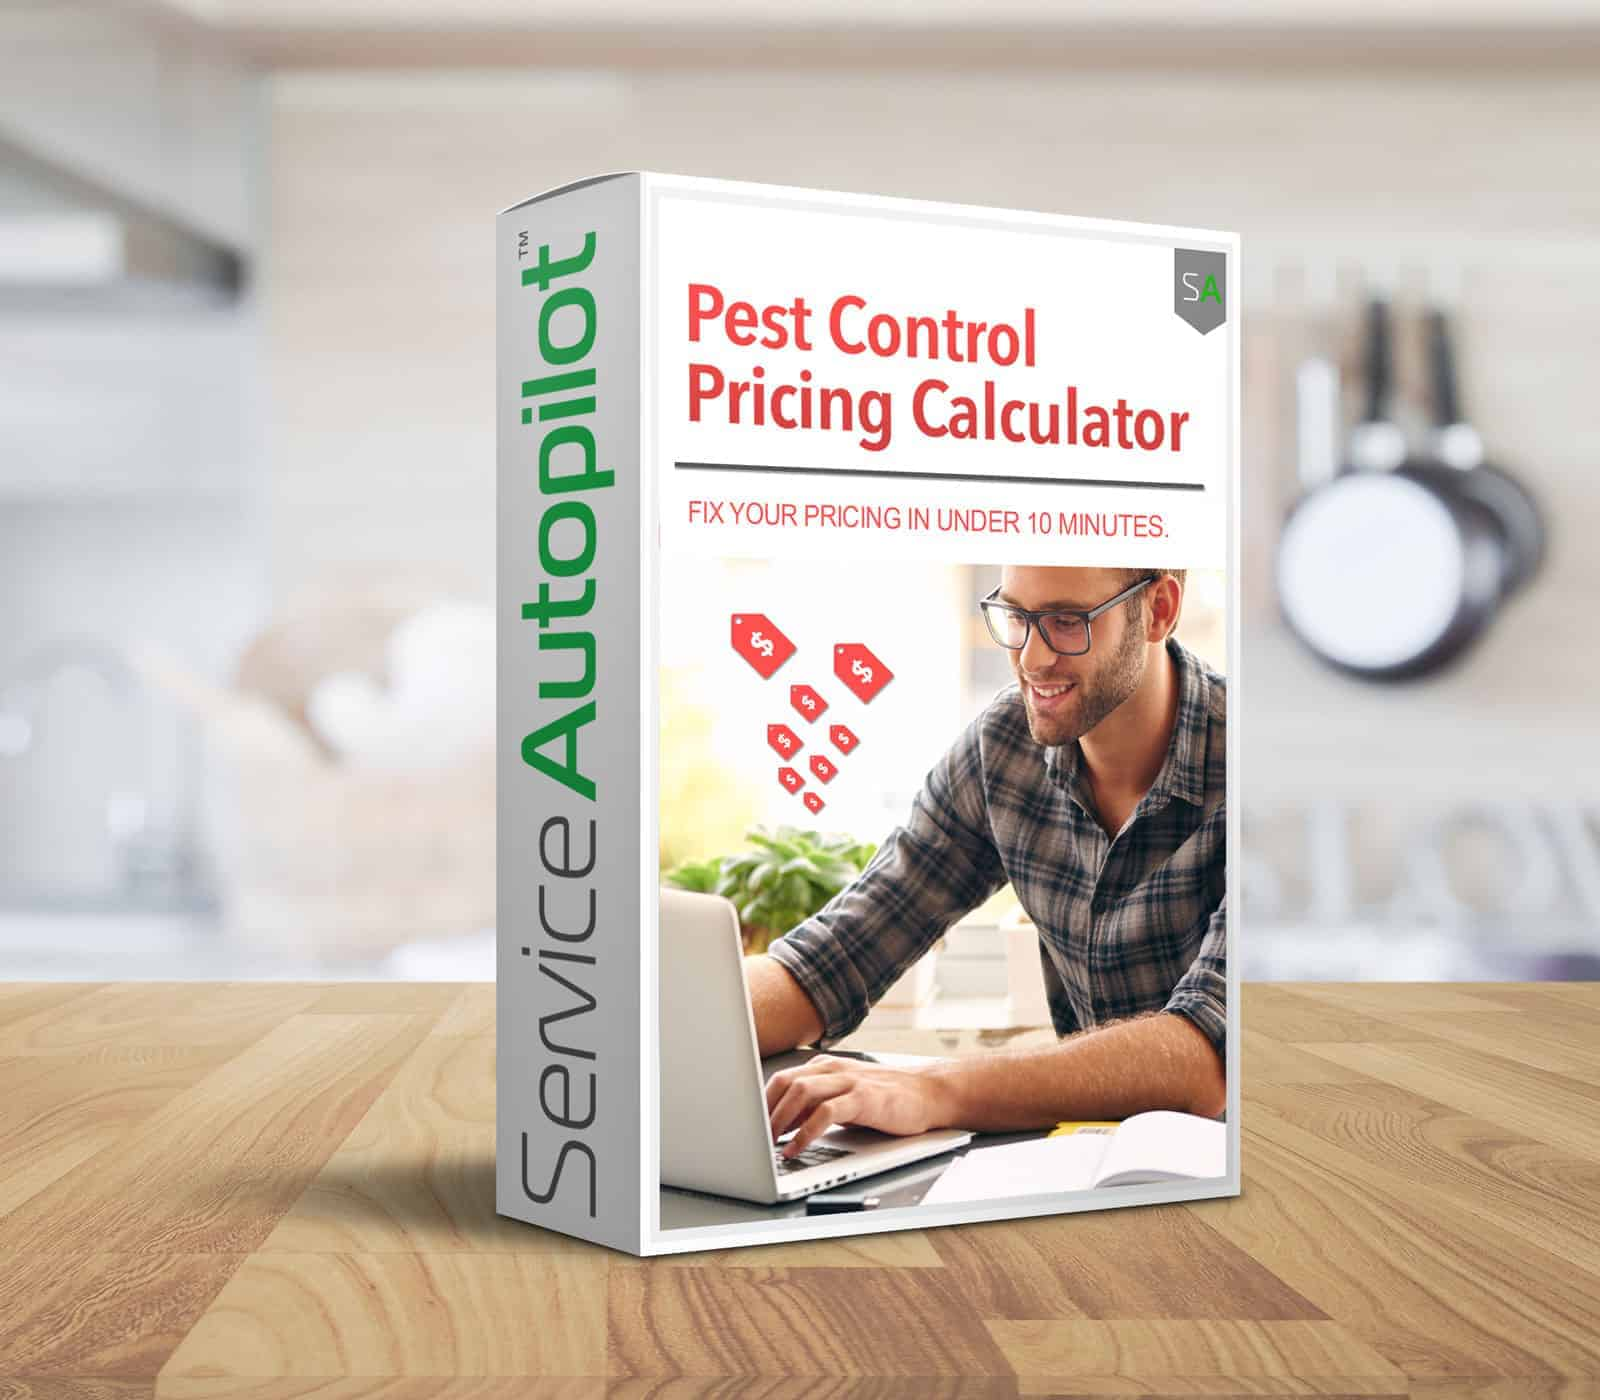 pest control pricing calculator product